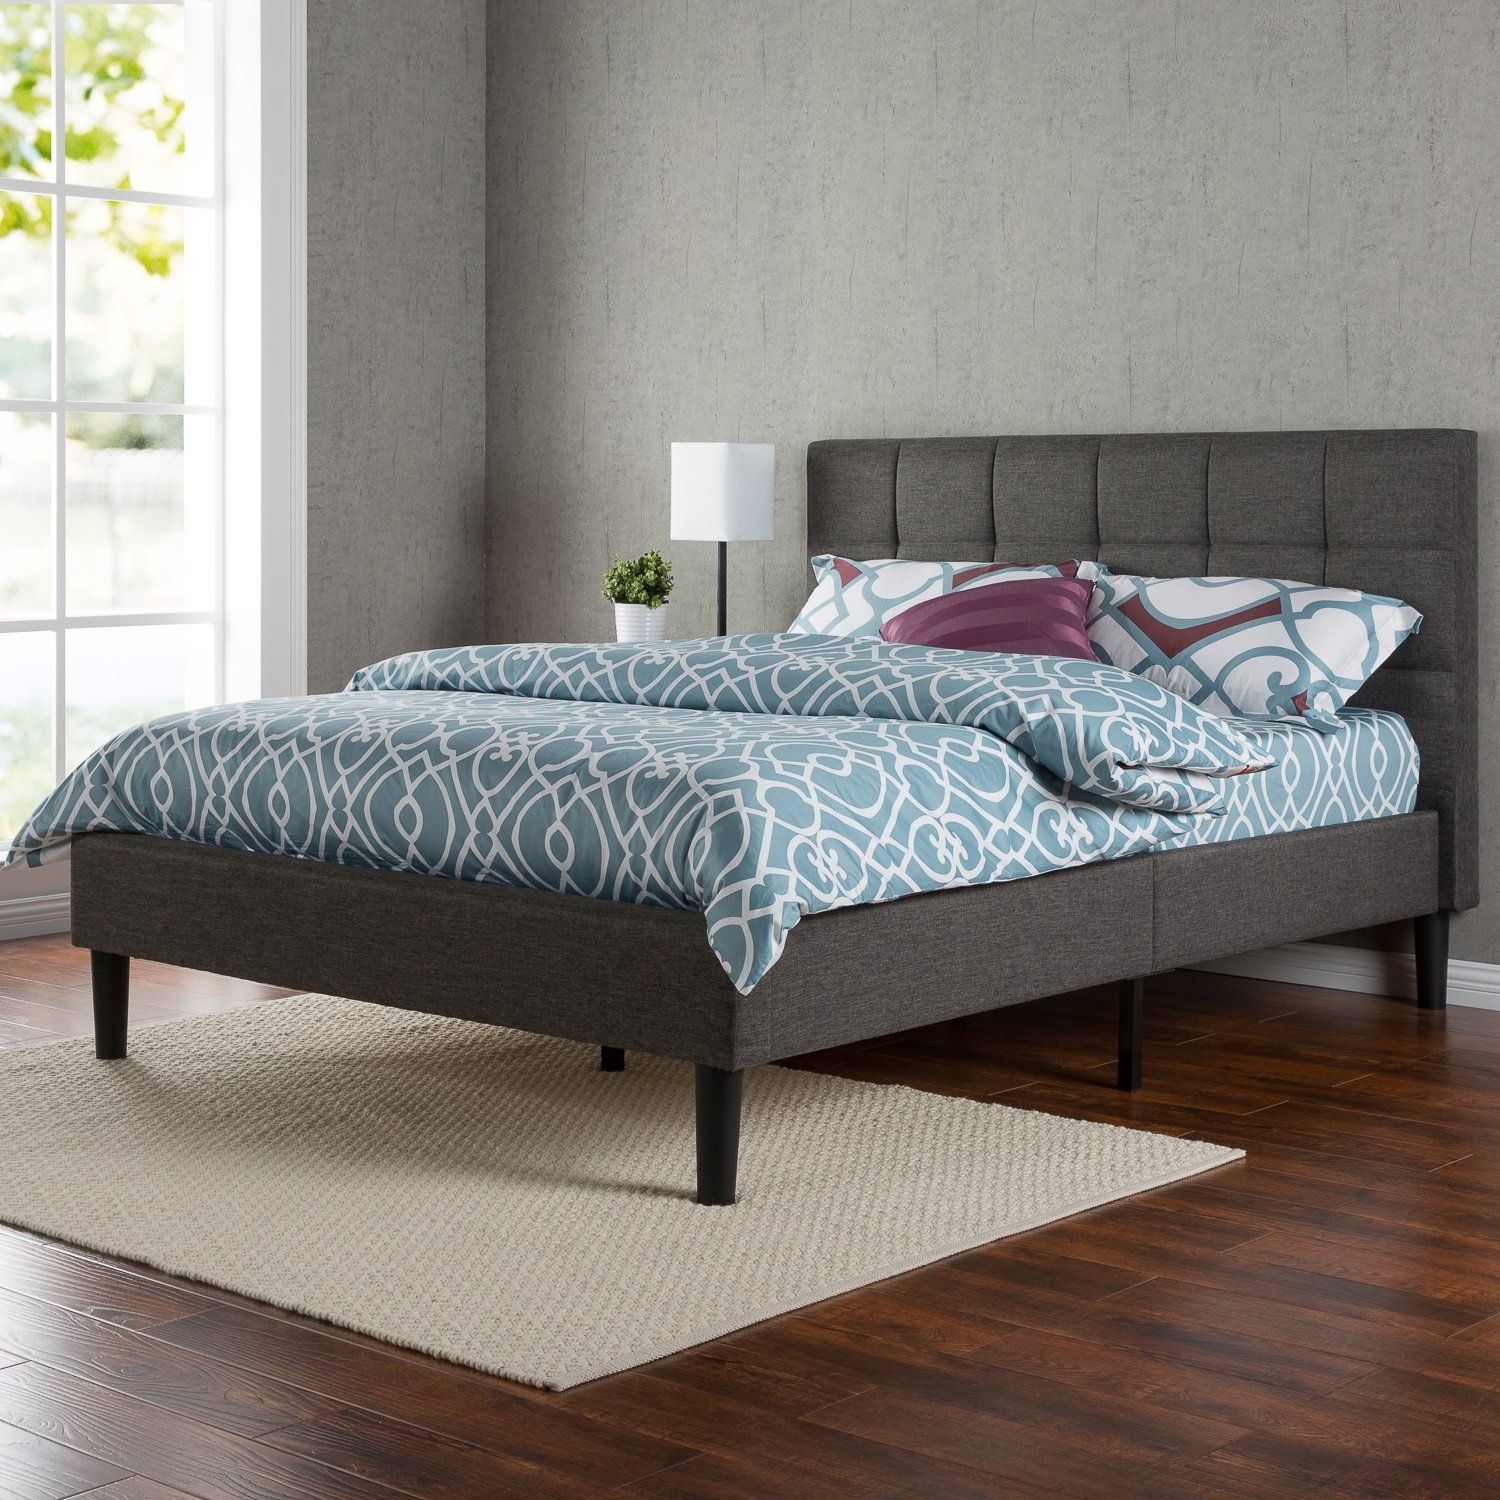 Amazon Com Zinus Upholstered Square Stitched Platform Bed With Wooden Slats Queen Kitchen Dining Bett Dekor Hochbett Plattform Bett